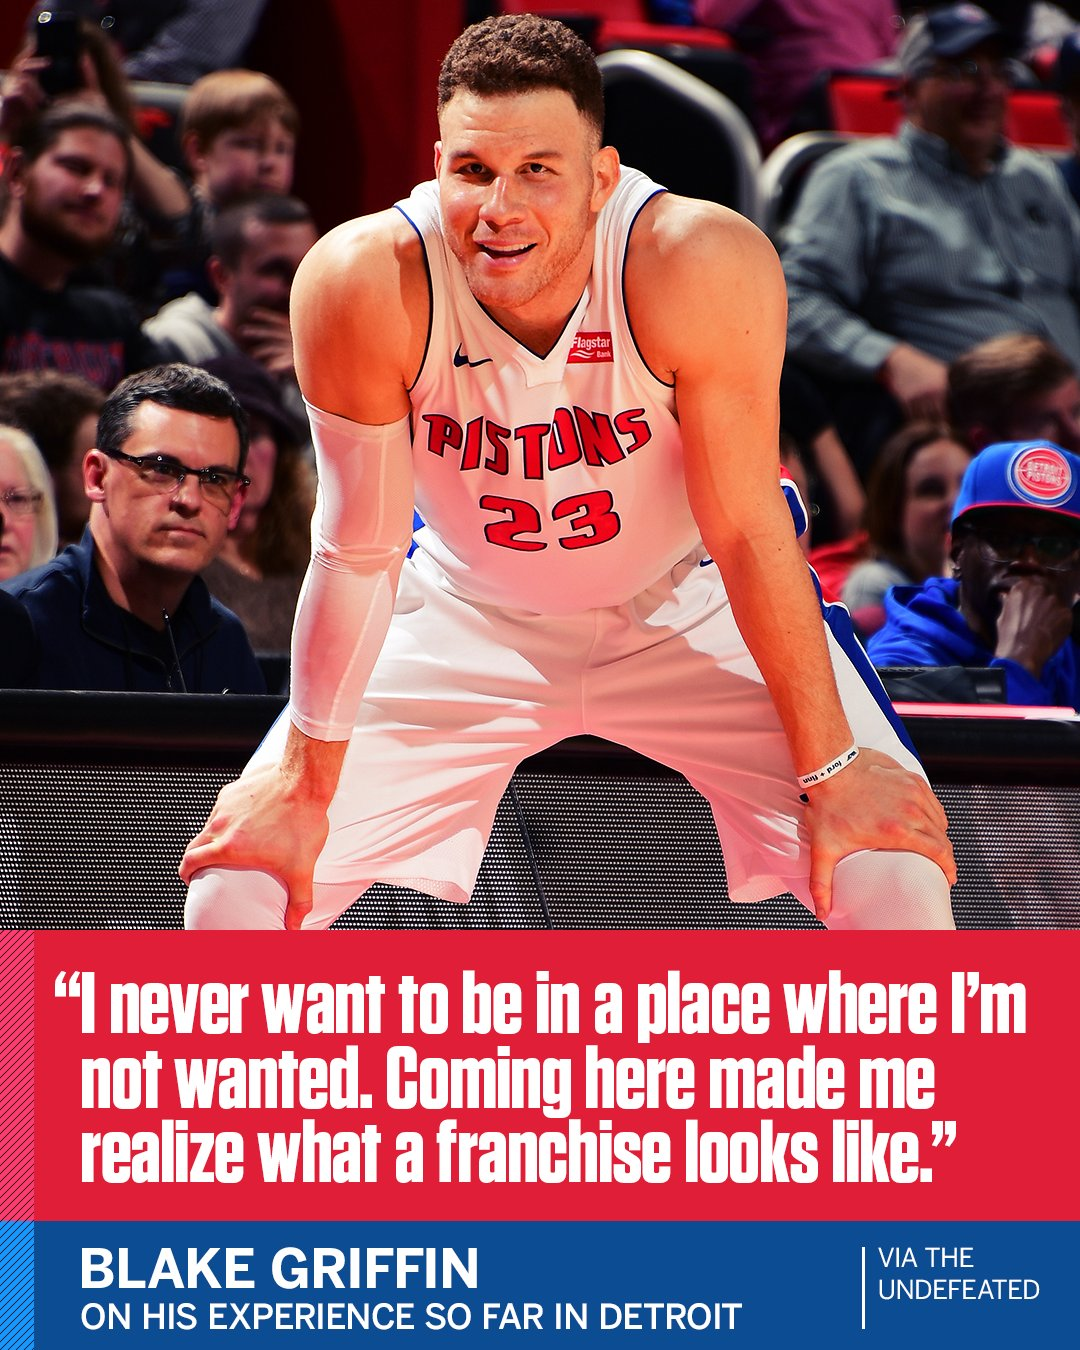 Blake Griffin feels at home with the @DetroitPistons. (via @MarcJSpearsESPN) https://t.co/GTEjaZBODB